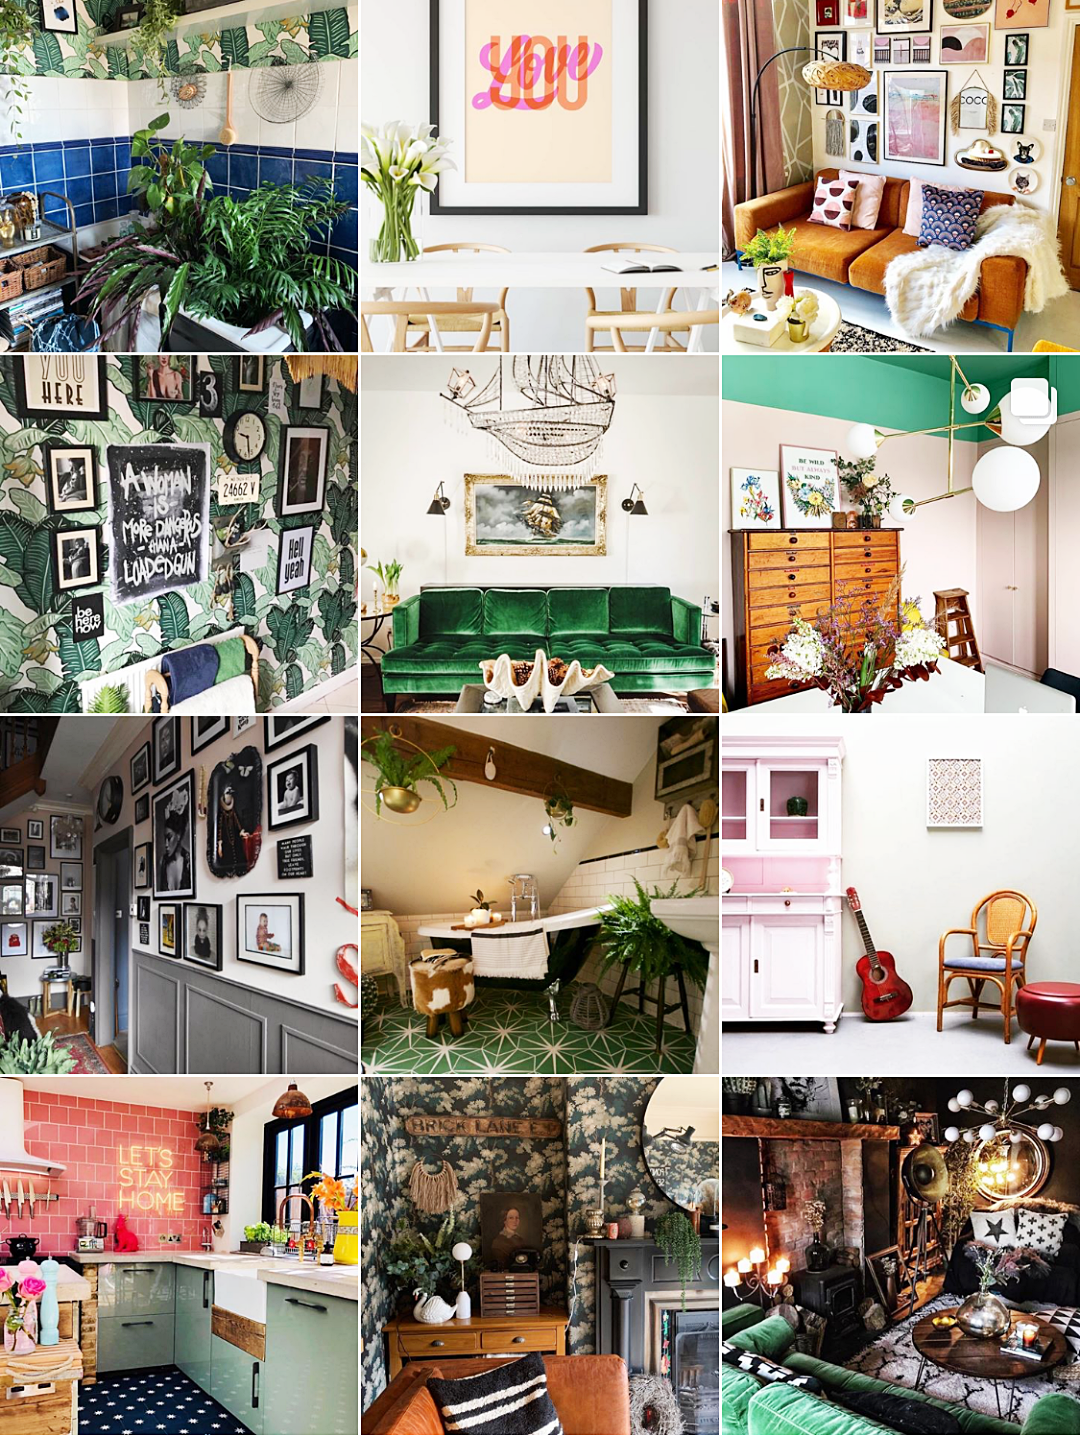 Inspirationen für Wohnen mit Farbe | Tschüss Minimalismus – Hallo farbstarke Einrichtungen | Bold & Eclectic Interior Instagram Accounts - @the-girl-with-the-green-sofa | luziapimpinella.com